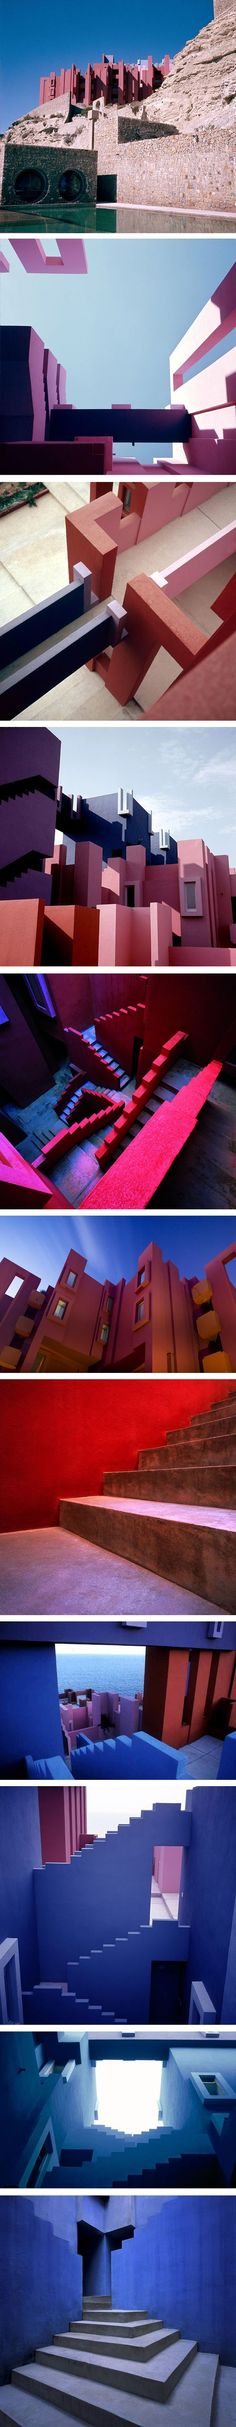 La Muralla Roja (Red Wall). Housing Project in Calpe, Spain. Spanish architect Richardo Bofil.1968: